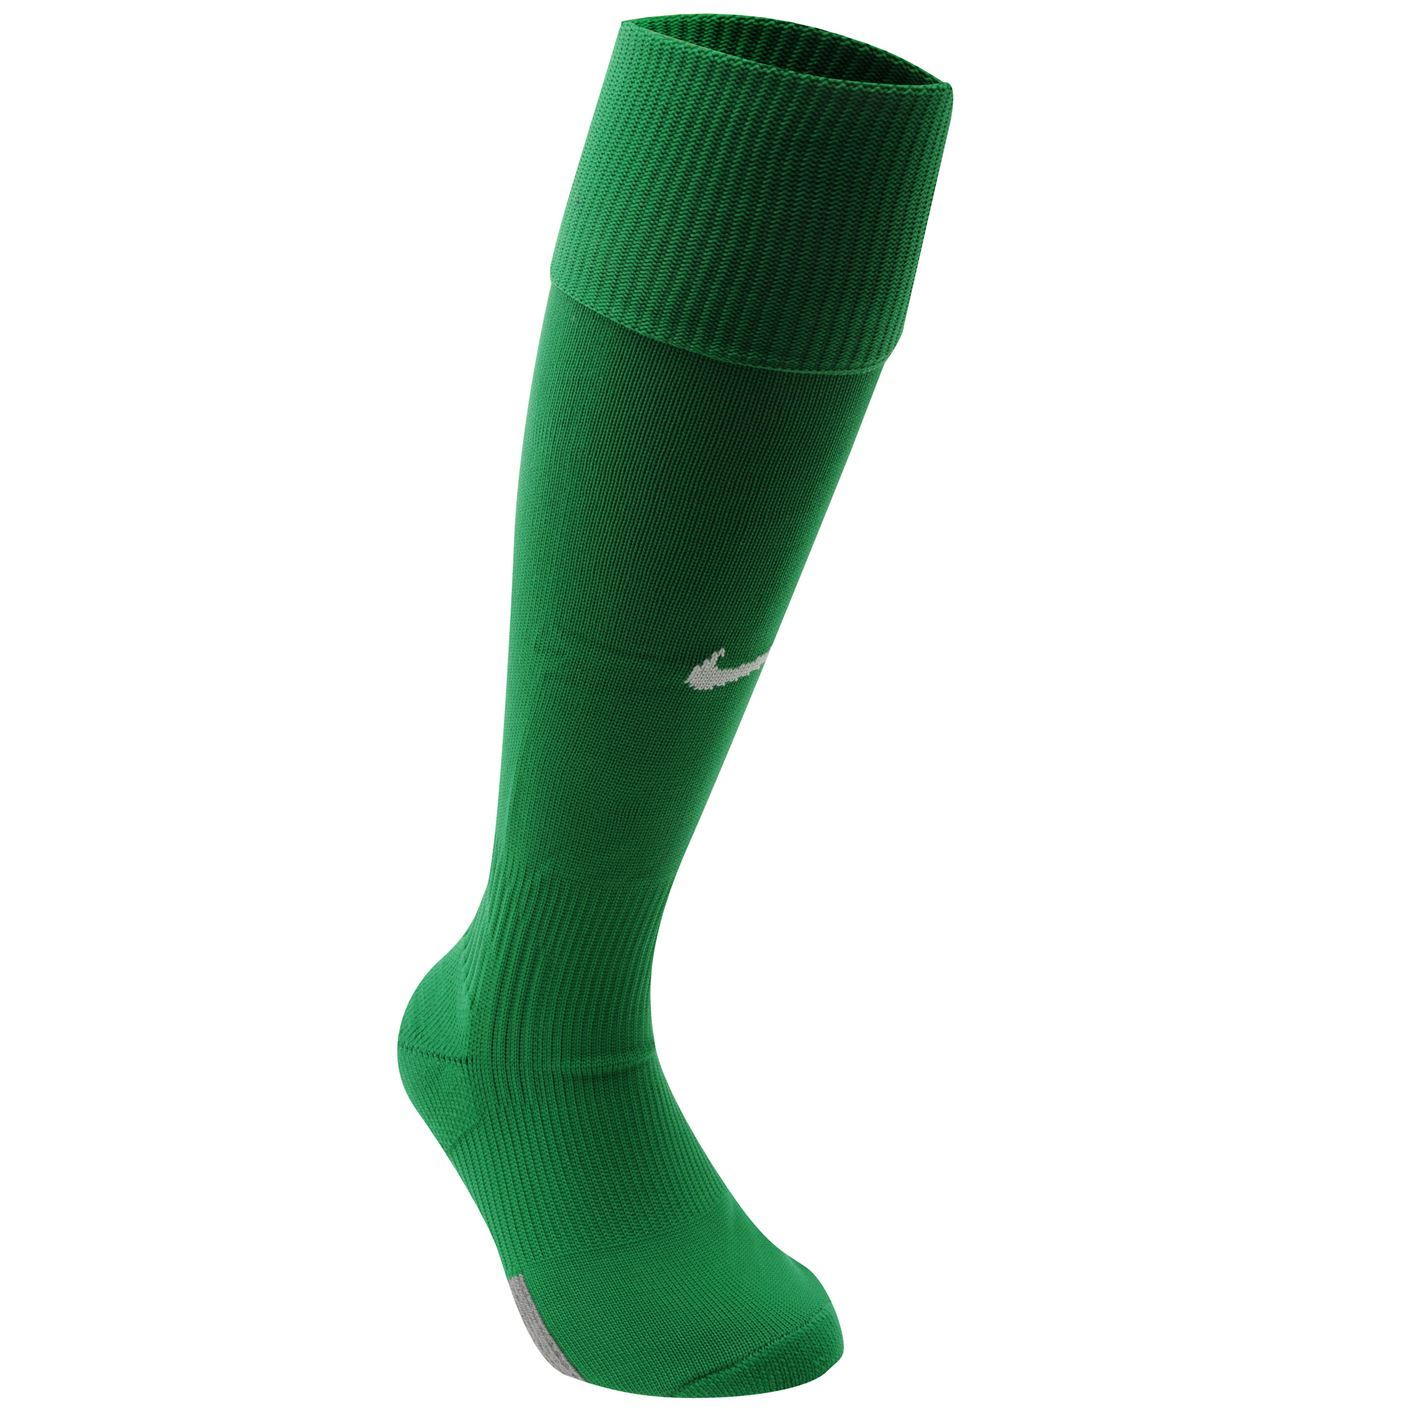 Nike Park III Football Socks Green Soccer | eBay - photo#31